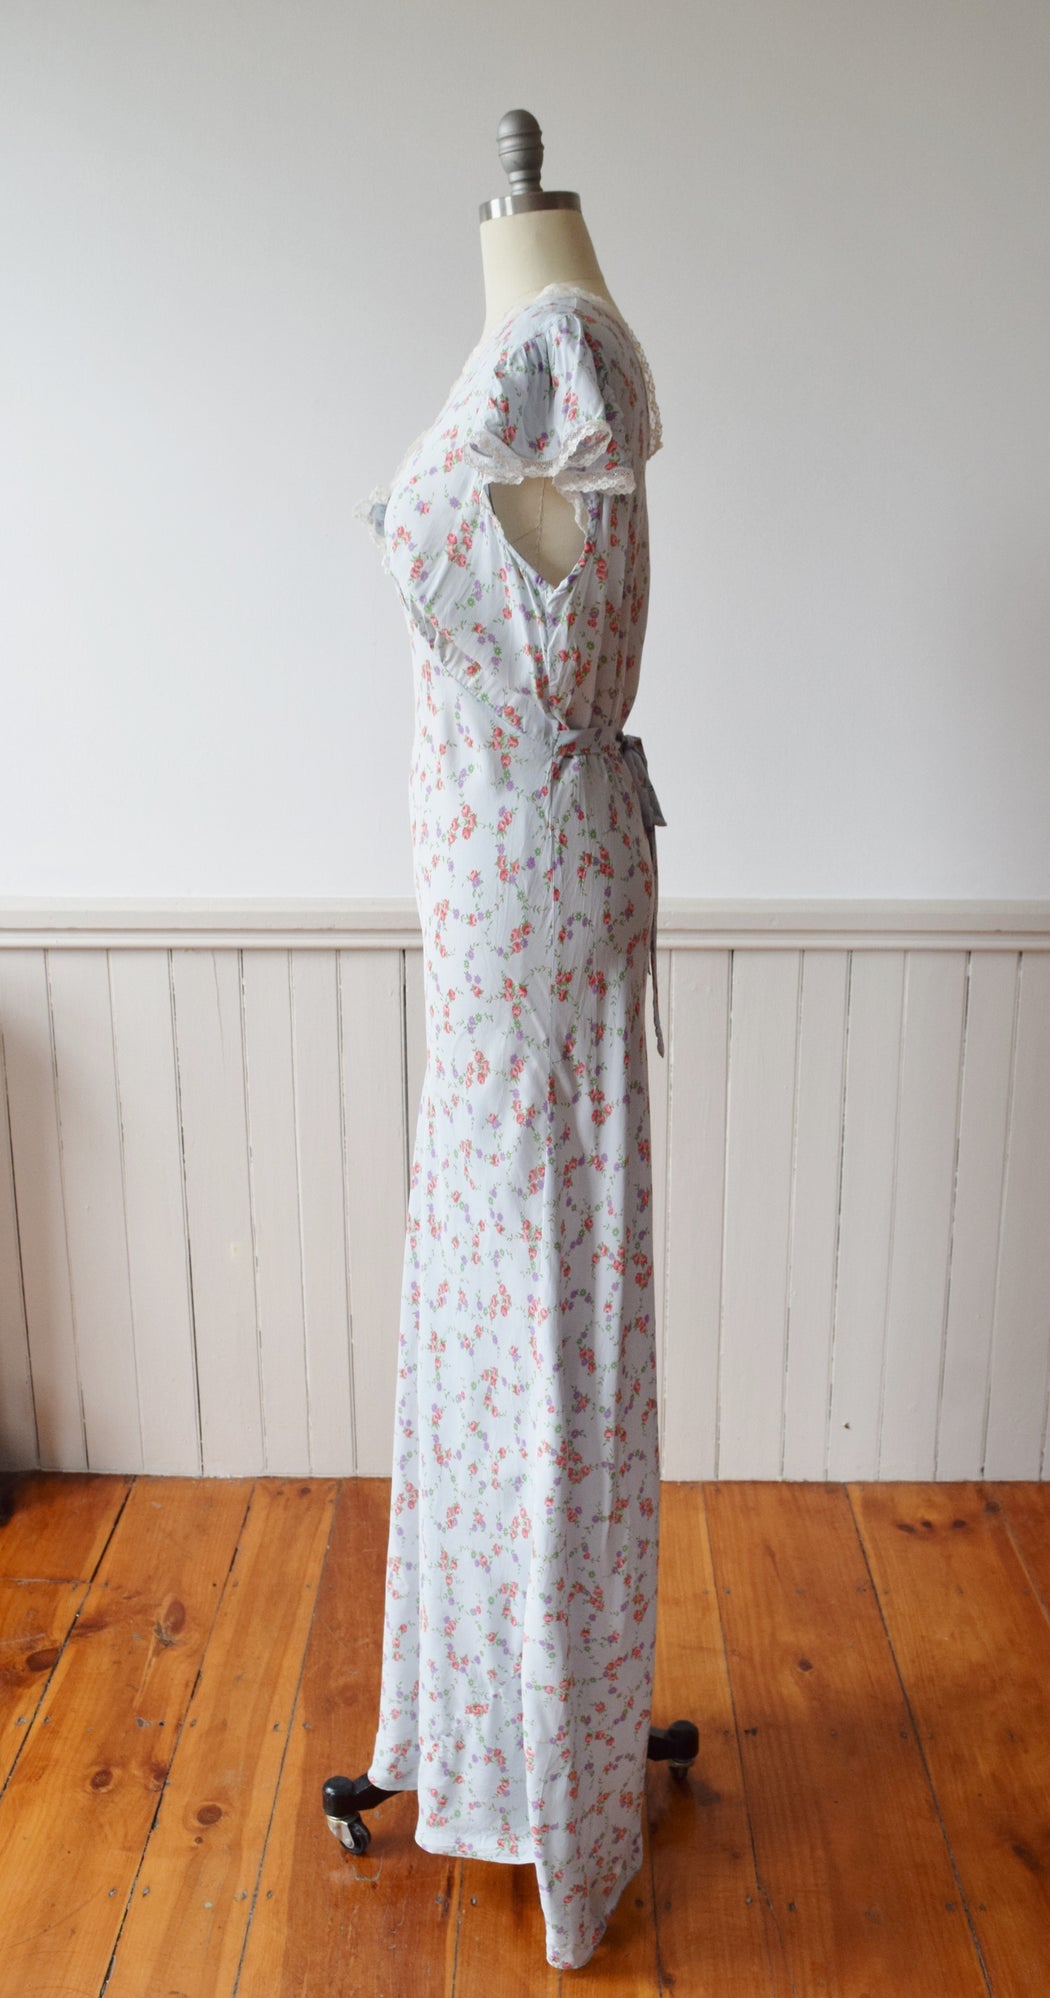 Vintage Bias Cut Nightgown Dress | 1930s | L